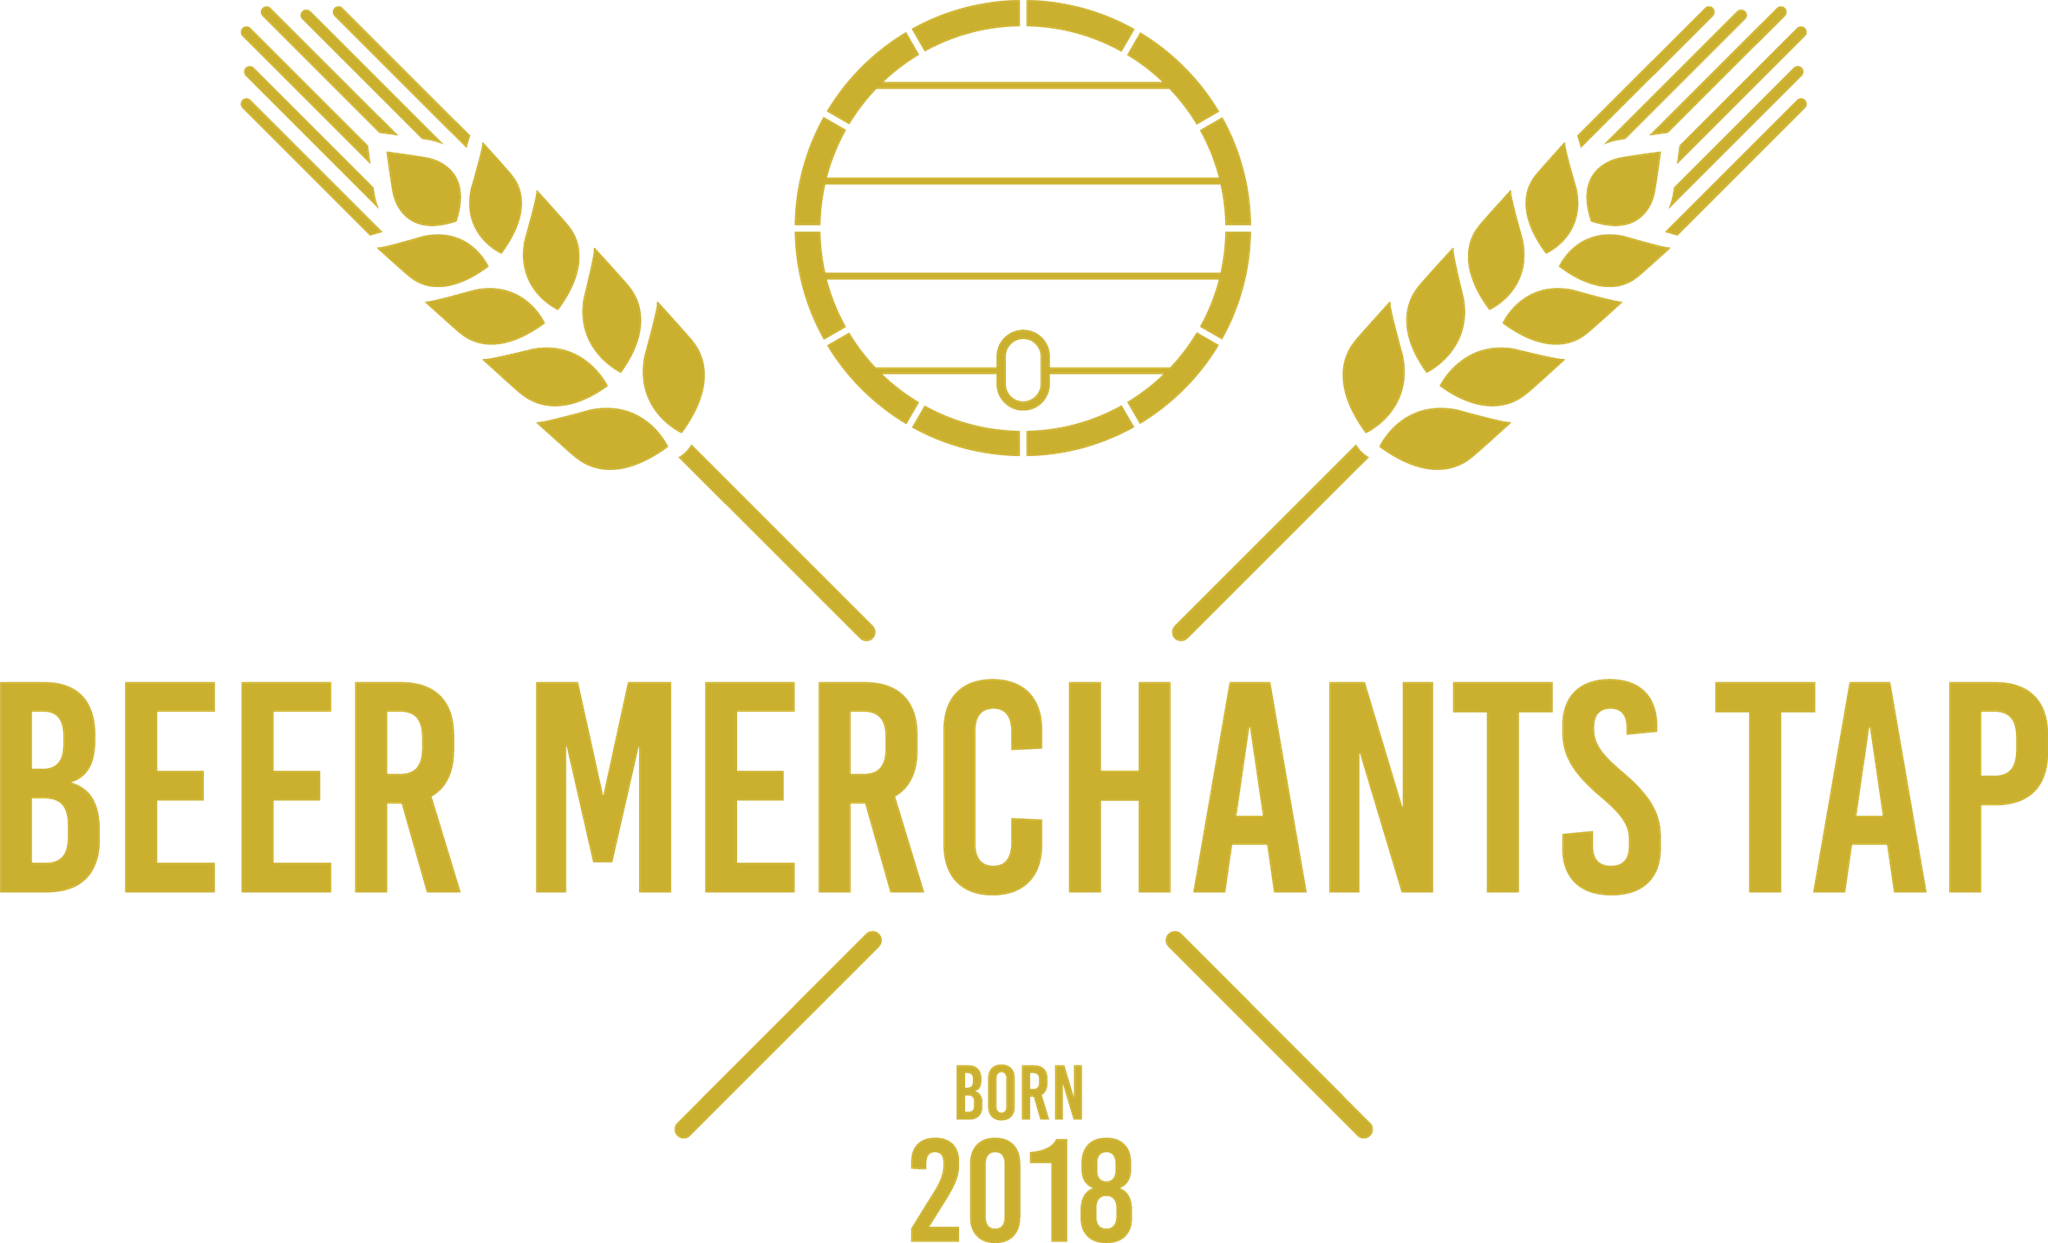 Beer Merchants Tap - Craft Beer London